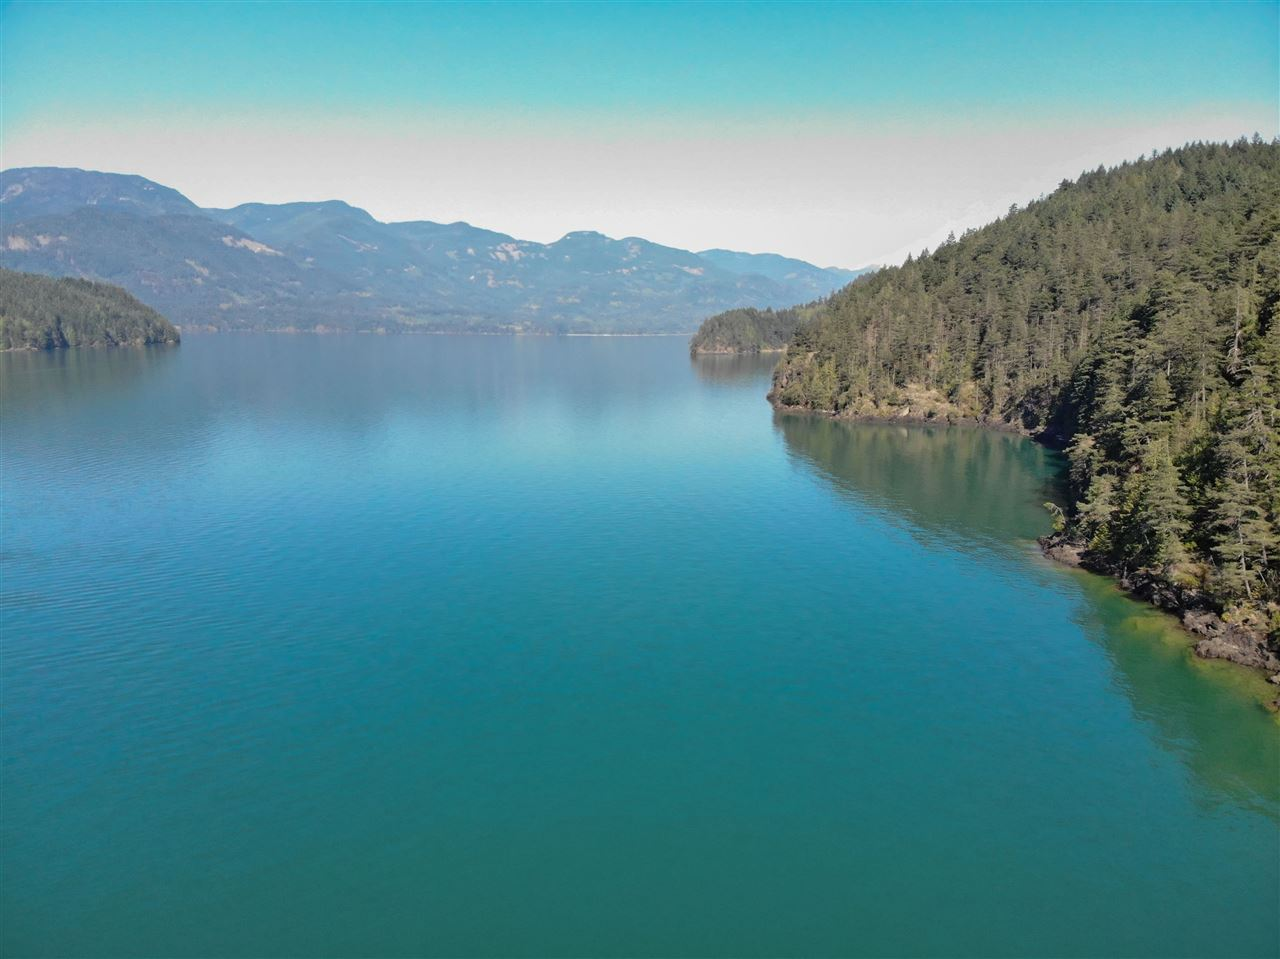 Premier waterfront lot, build your dream family cabin with south facing exposure; sunrise, all day sun, sunset and epic water views. Boat access only, however a quick 10 to 15 minute boat ride from the marina. Call your agent for more information.